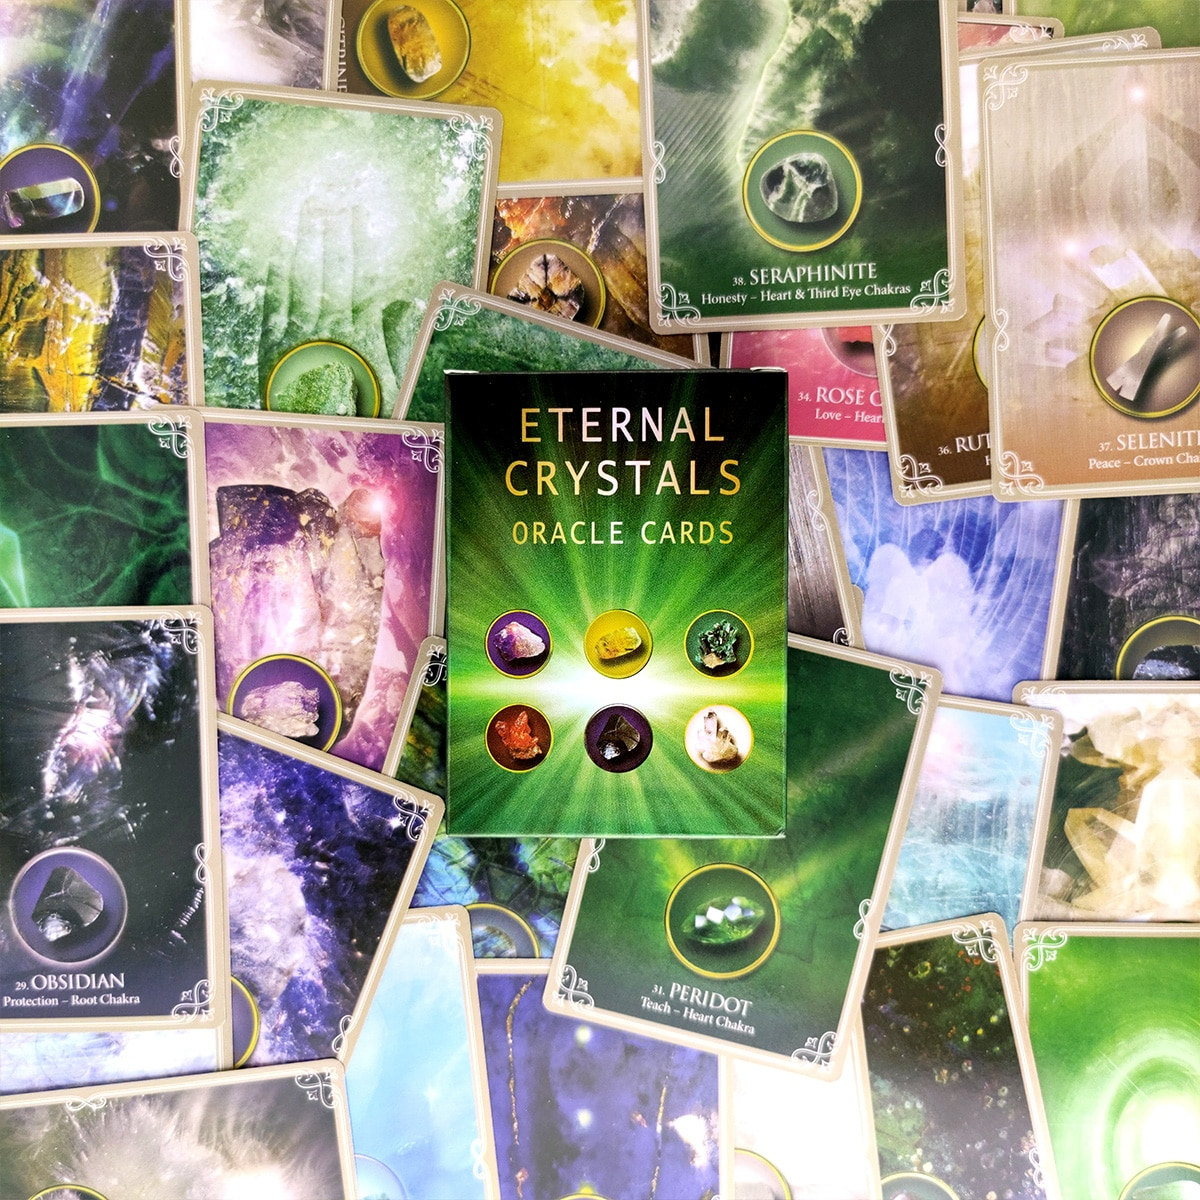 2021 New Tarot Cards Eternal Crystals Oracle Card And PDF Guidance Divination Deck Entertainment Parties Board Game 44 Pcs/Box